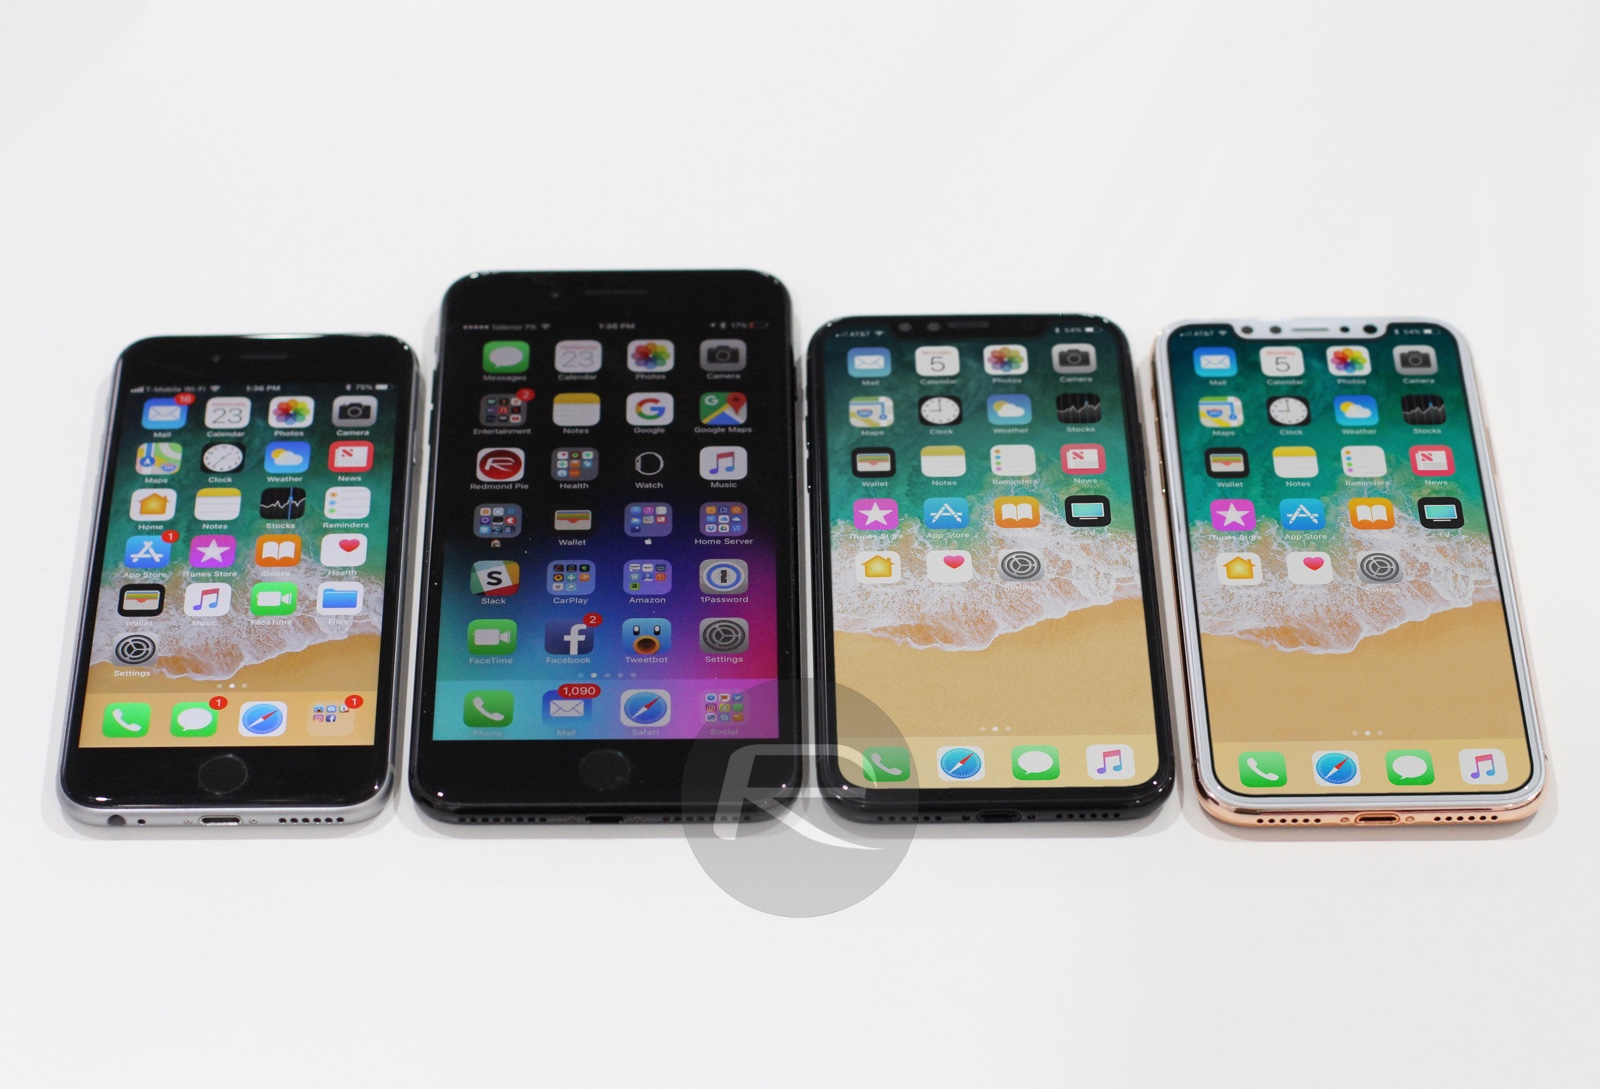 Comparative image of the model of the iPhone 8 / Edition with all the other models of iPhone